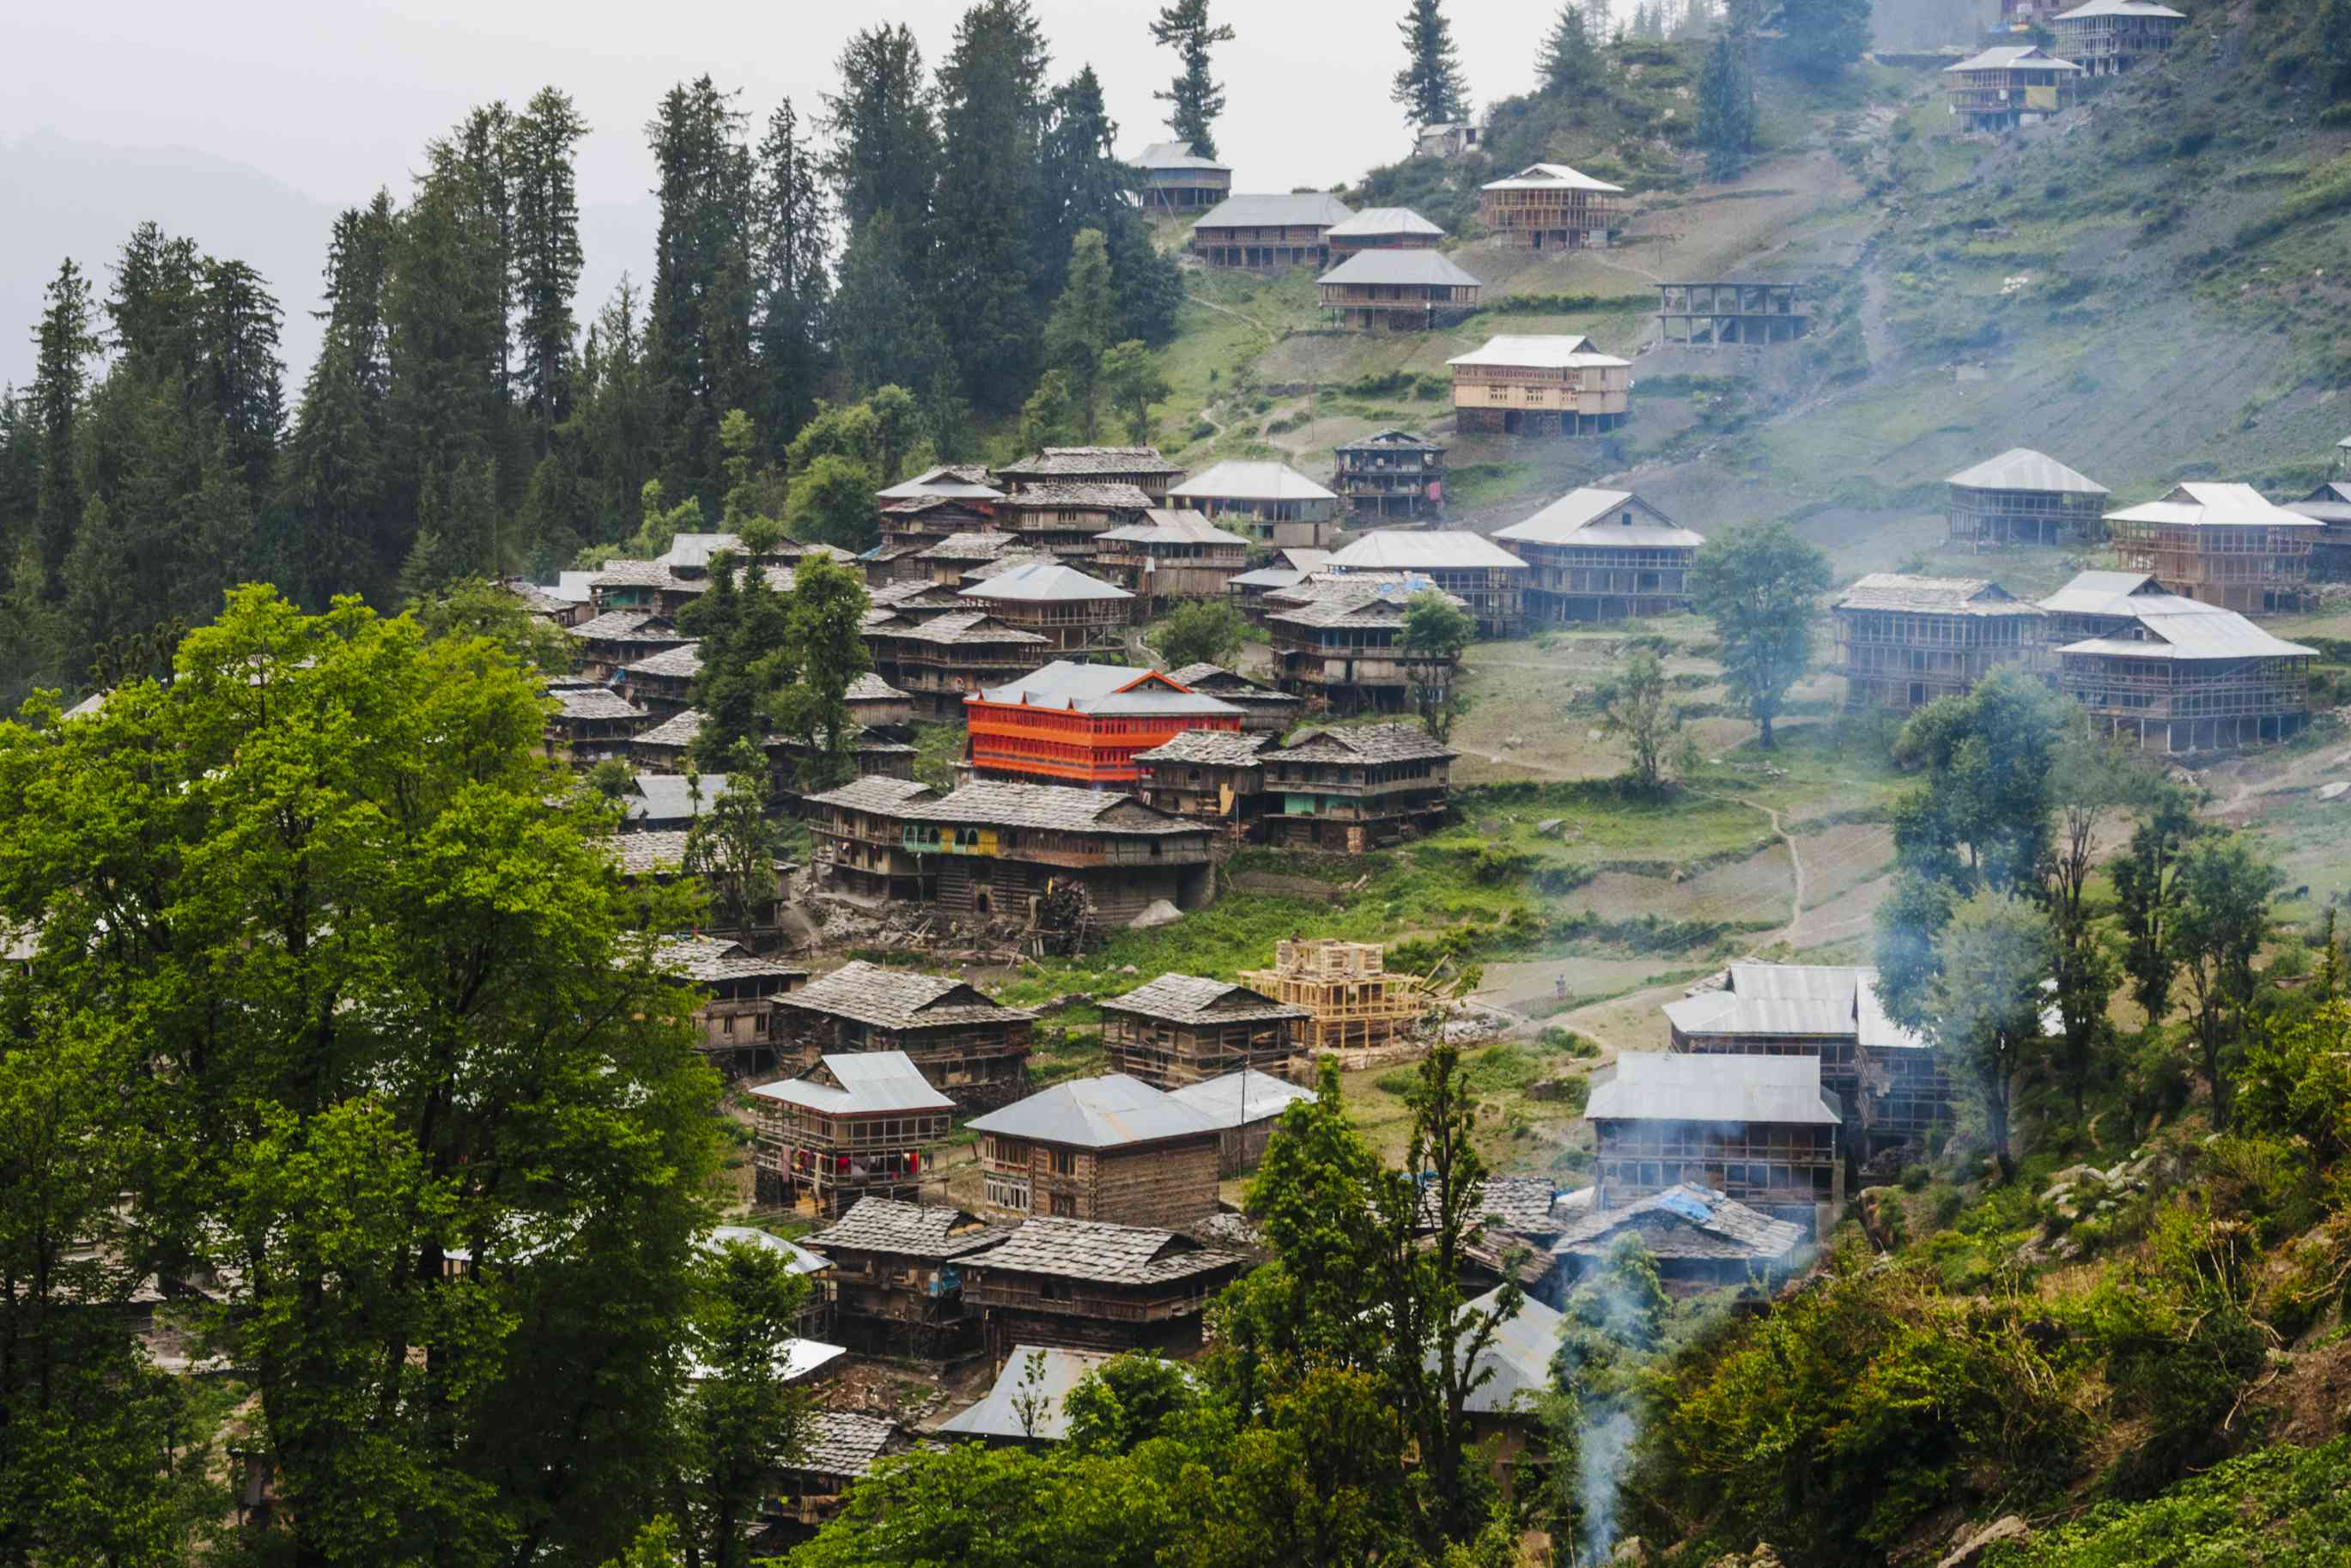 houses on a hillside with smoke in the foreground